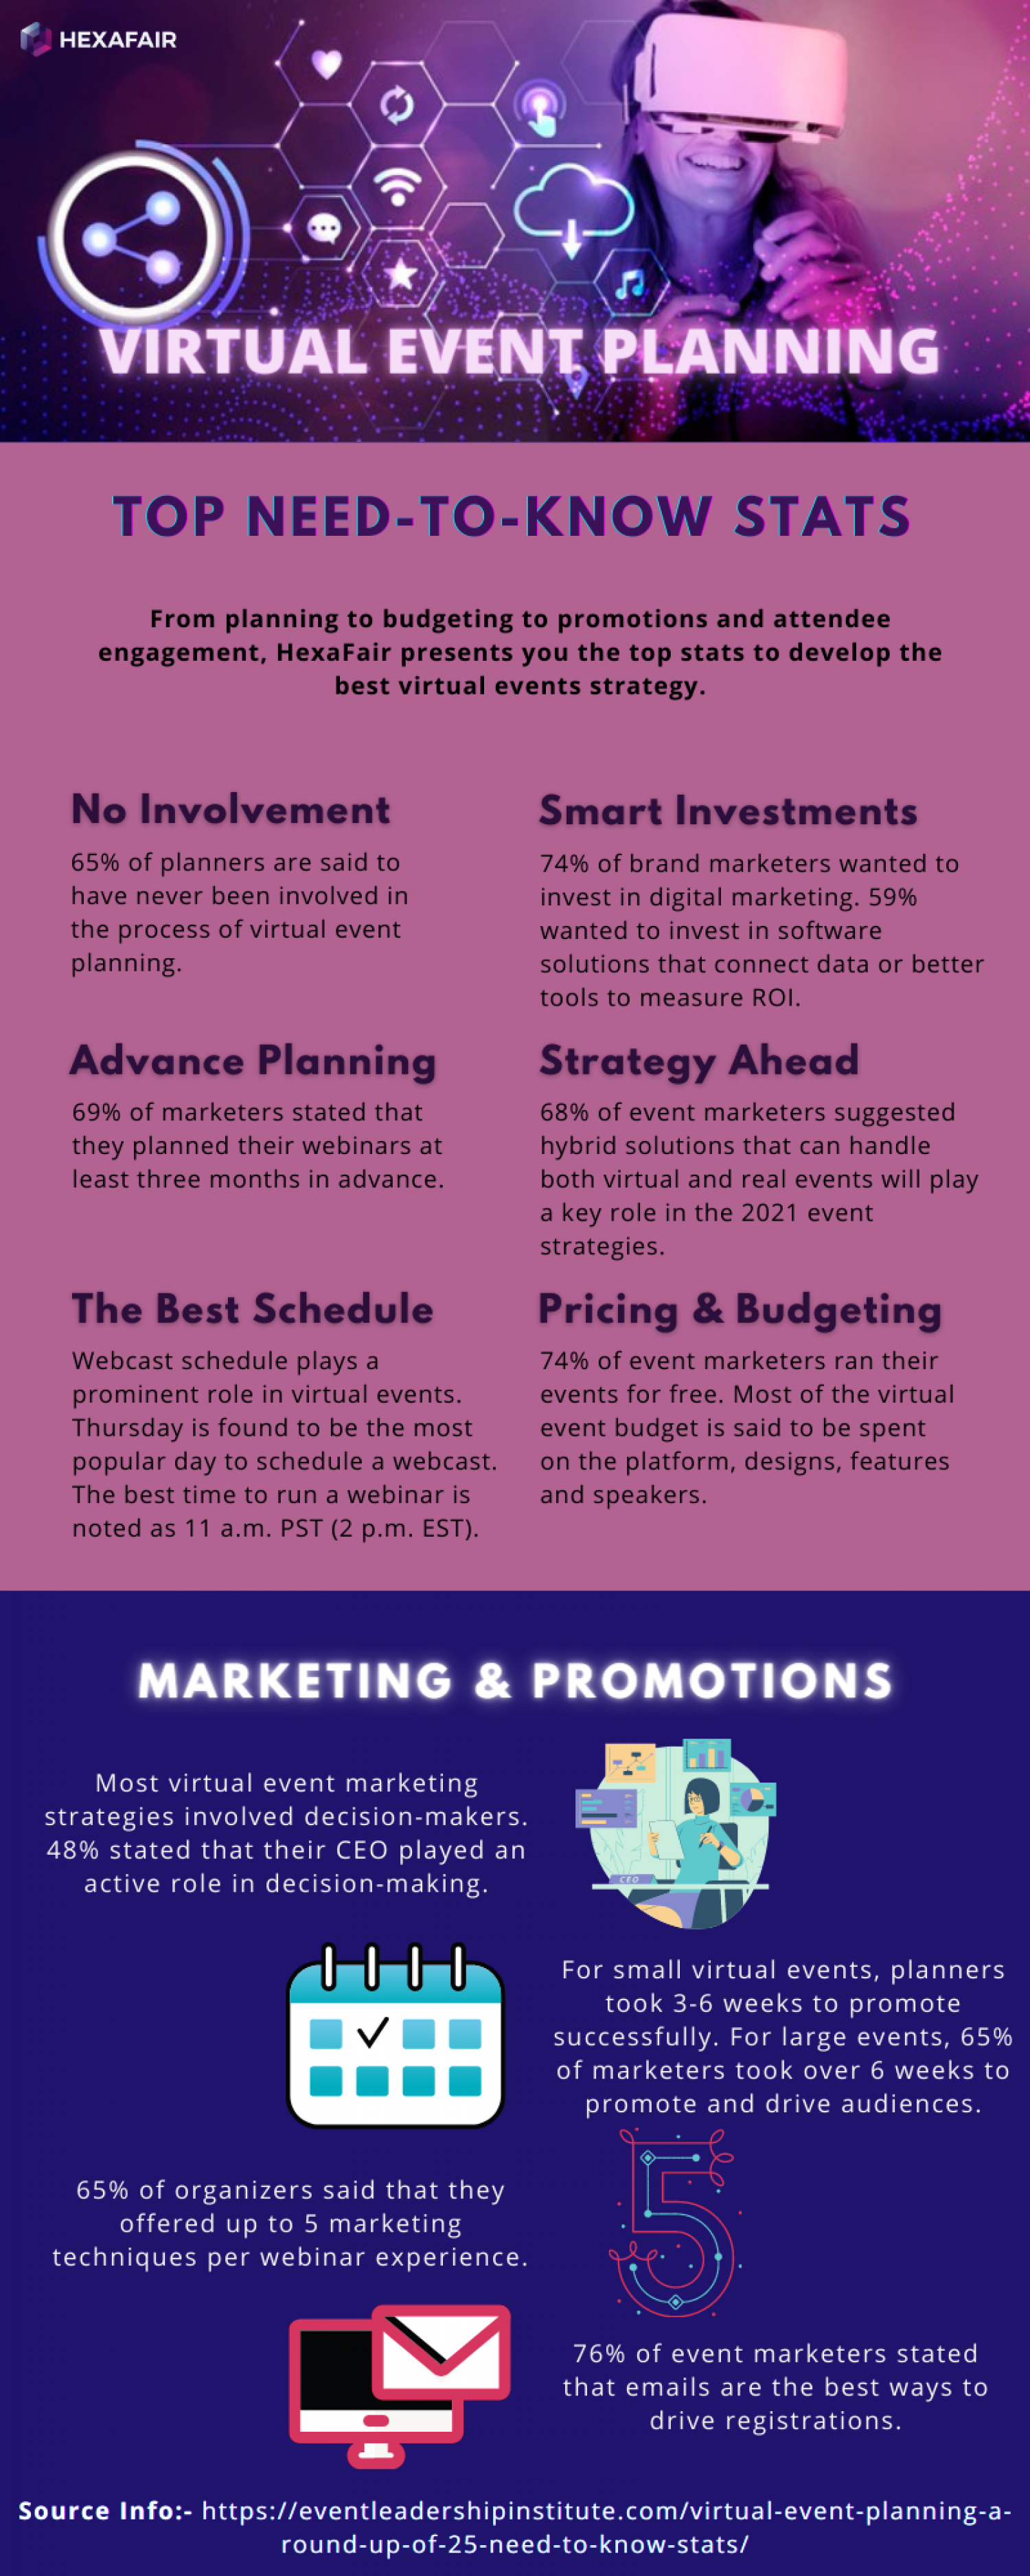 Top 10 Need to know facts – Virtual Events Planning Infographic